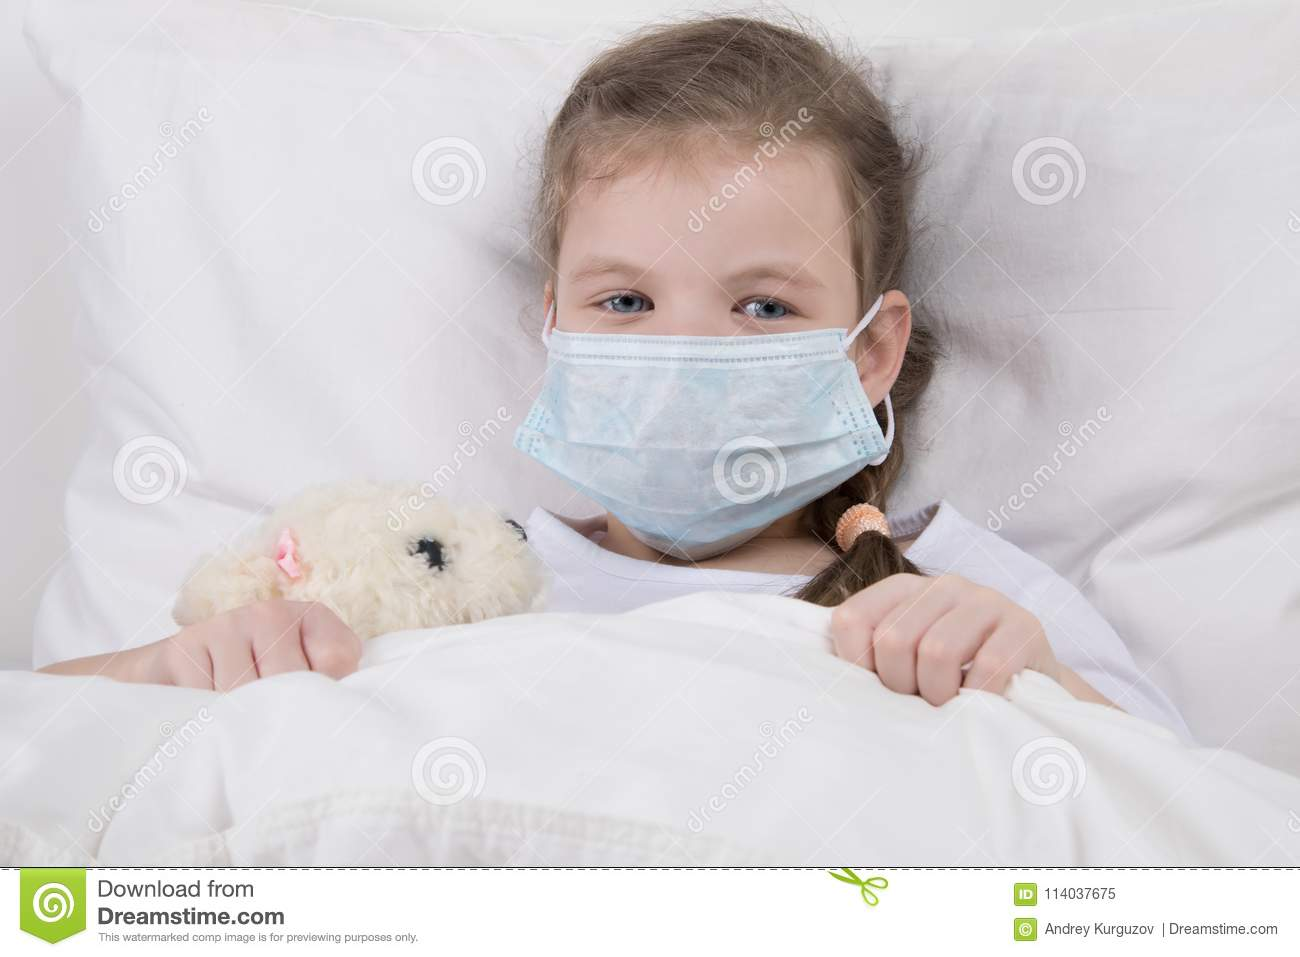 His Is Against Face Bed White Medical Mask In Wearing A On Child